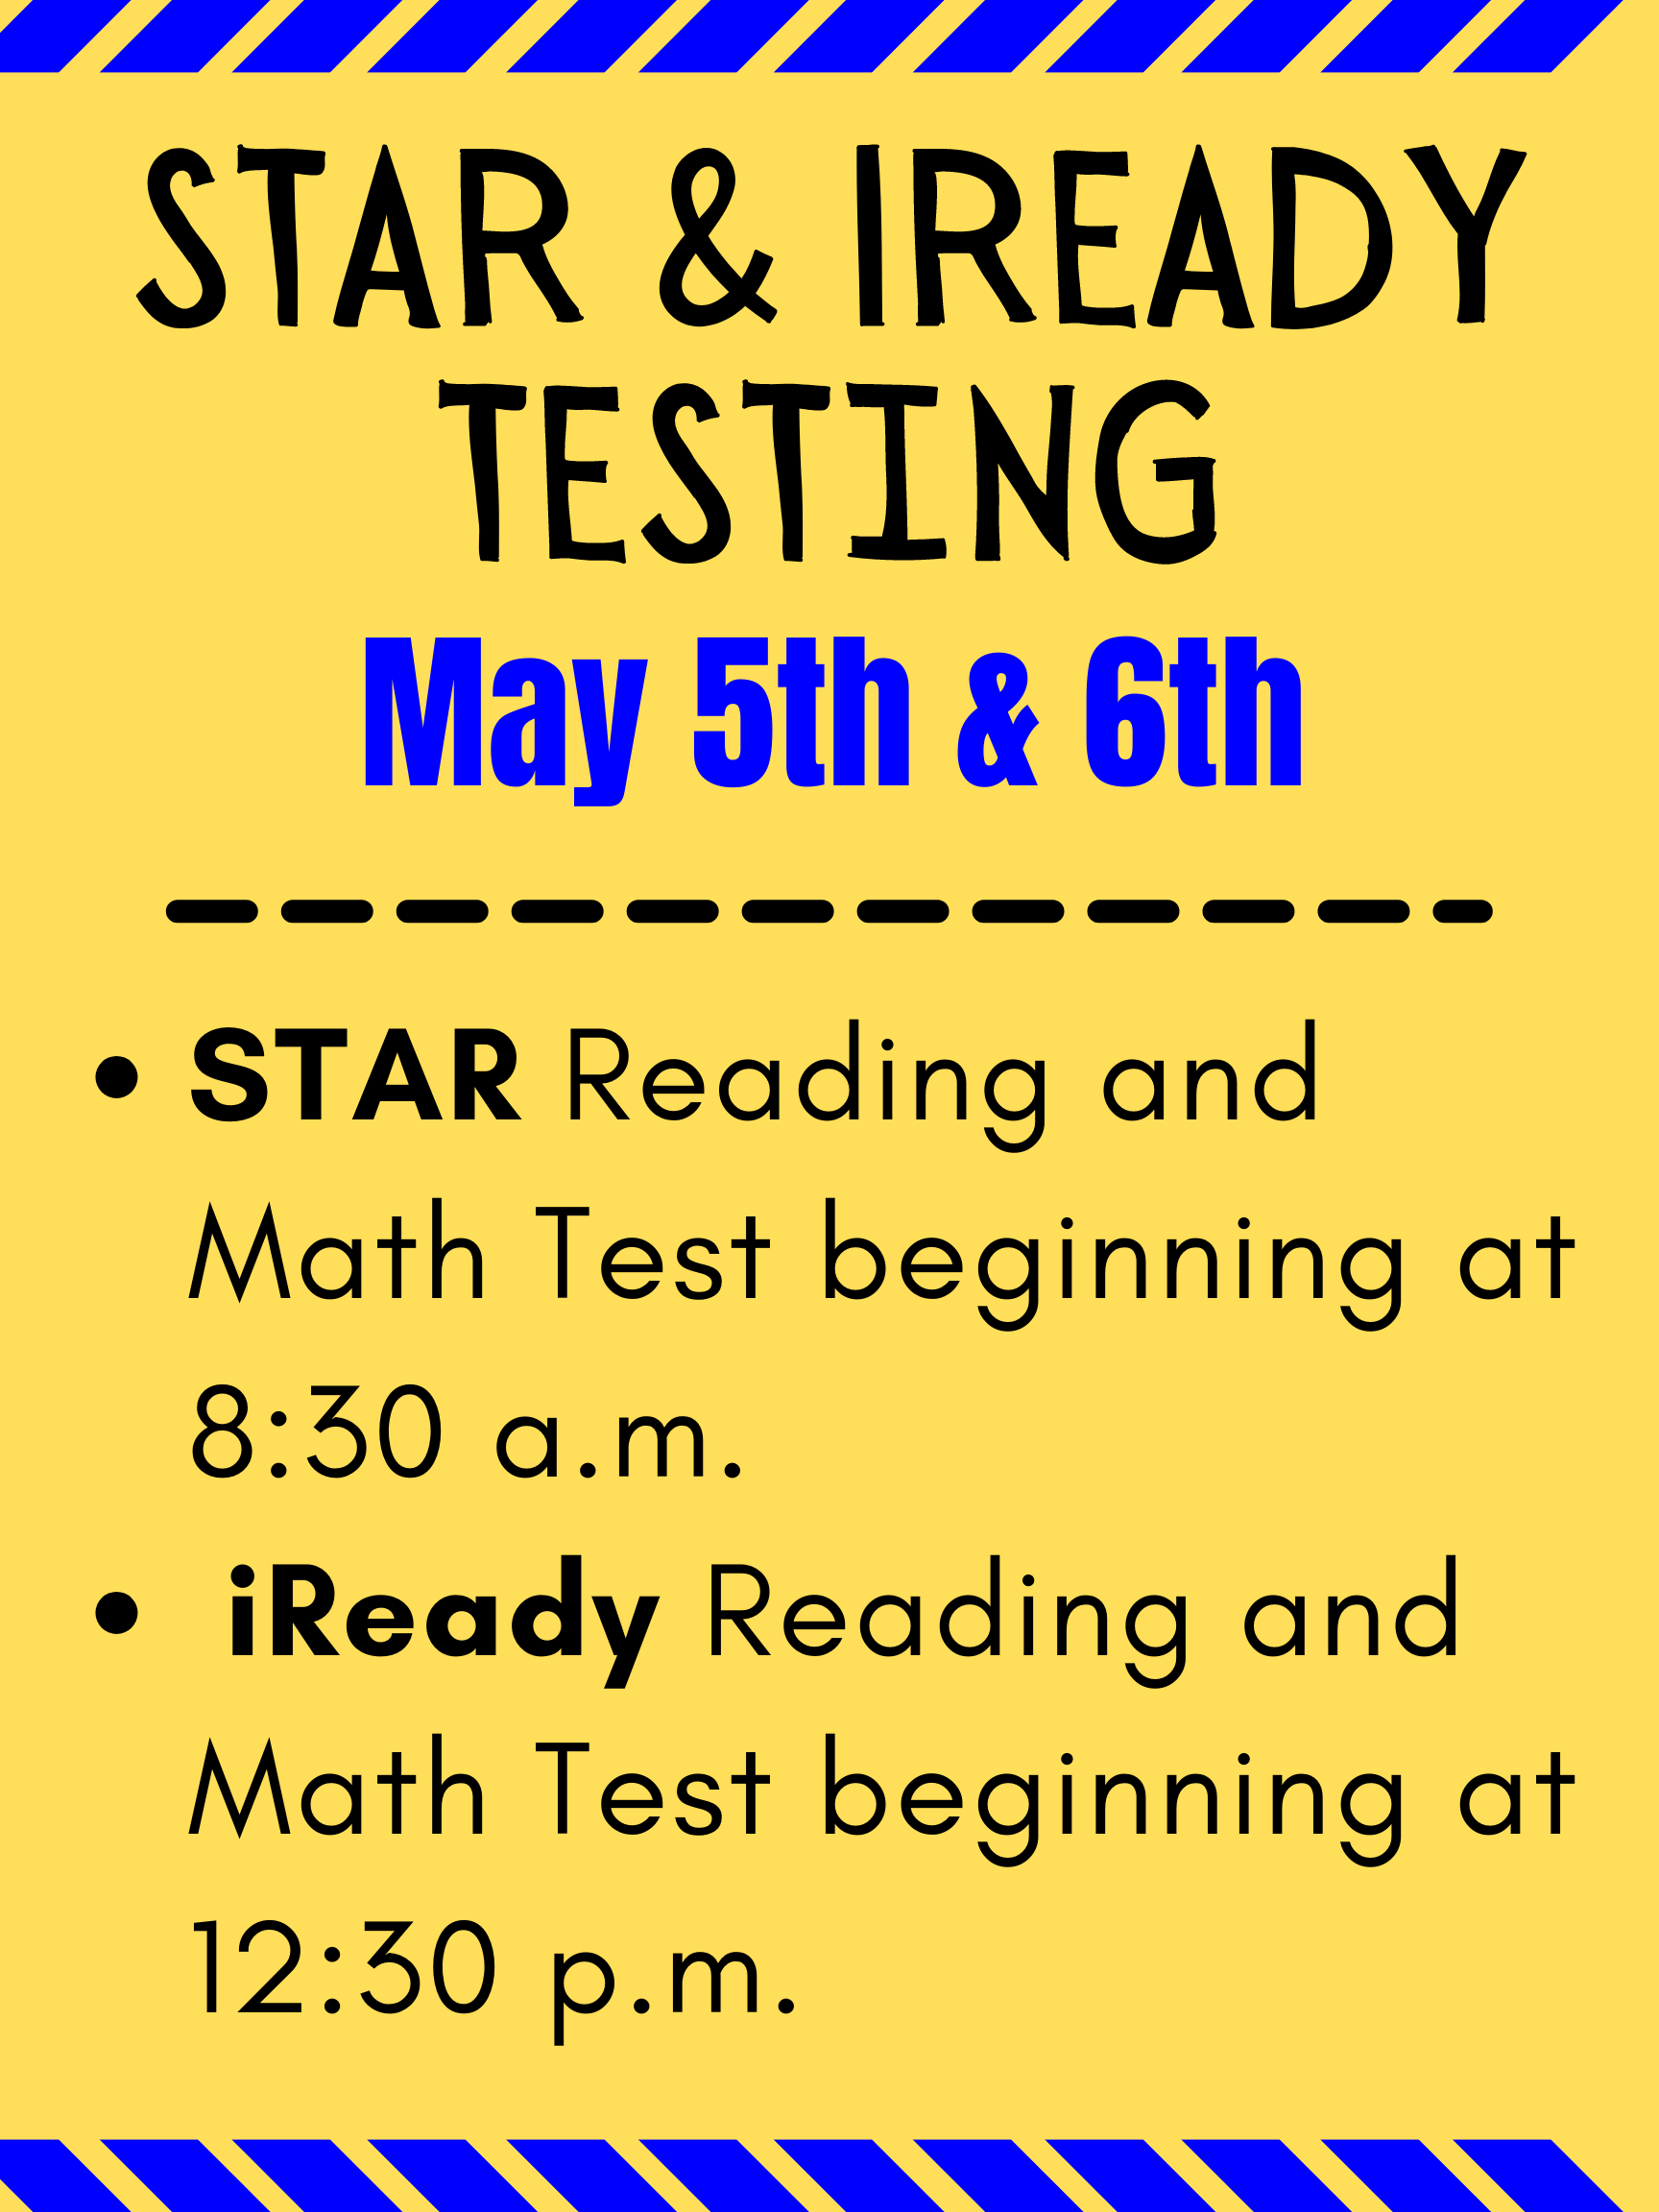 STAR & iReady testing this week!